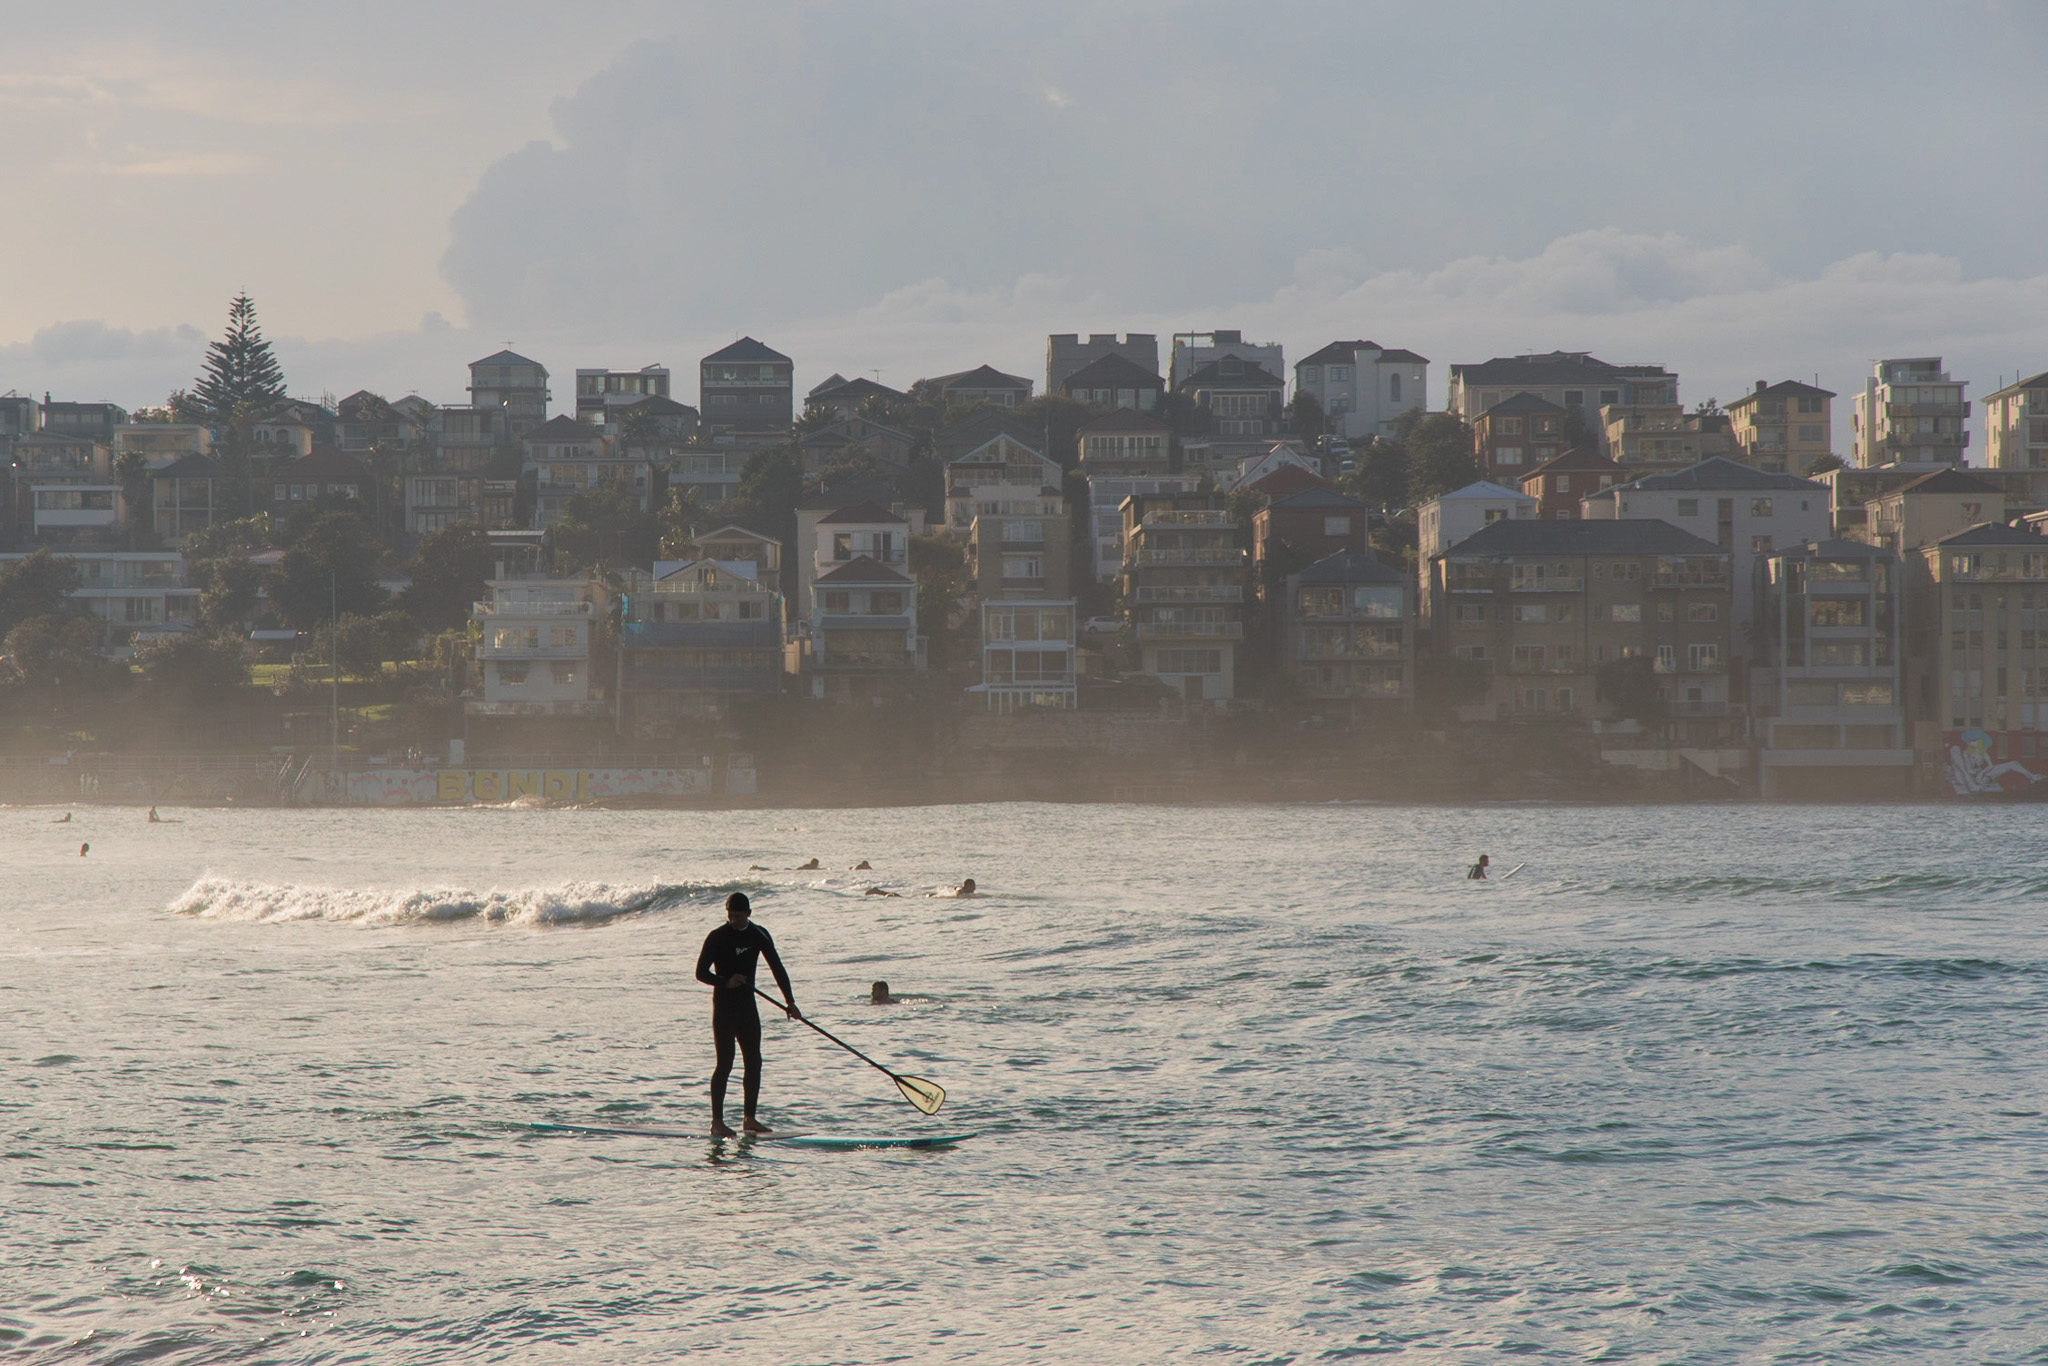 stand up paddle boarding at bondi beach